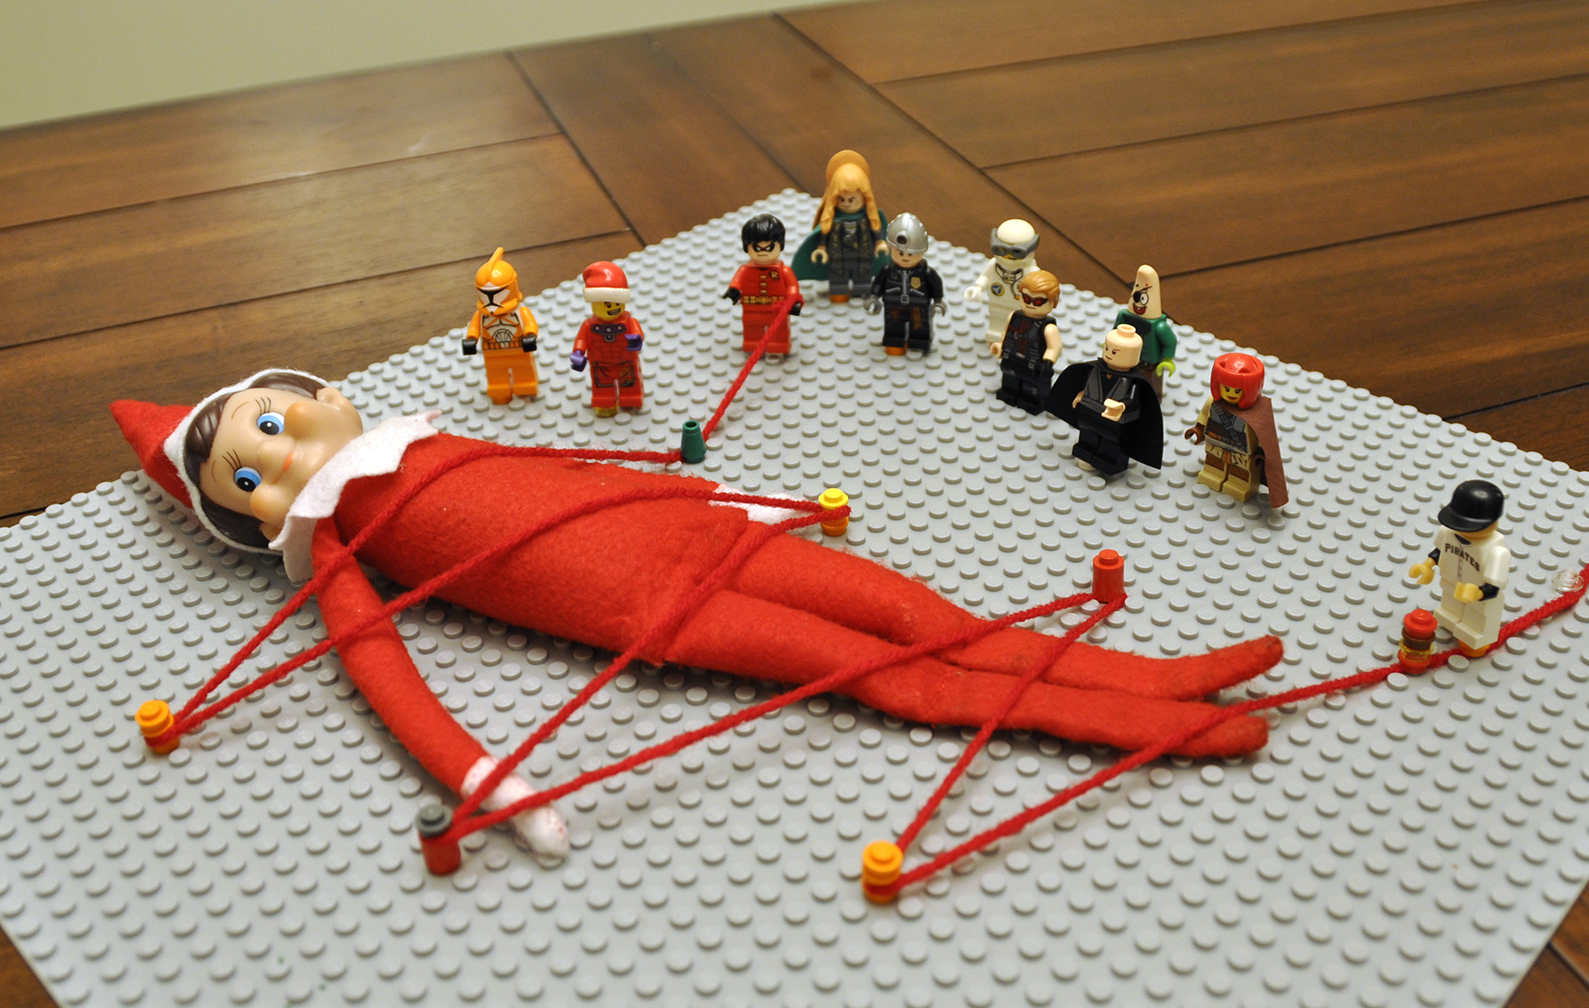 Elf on the shelf tied up